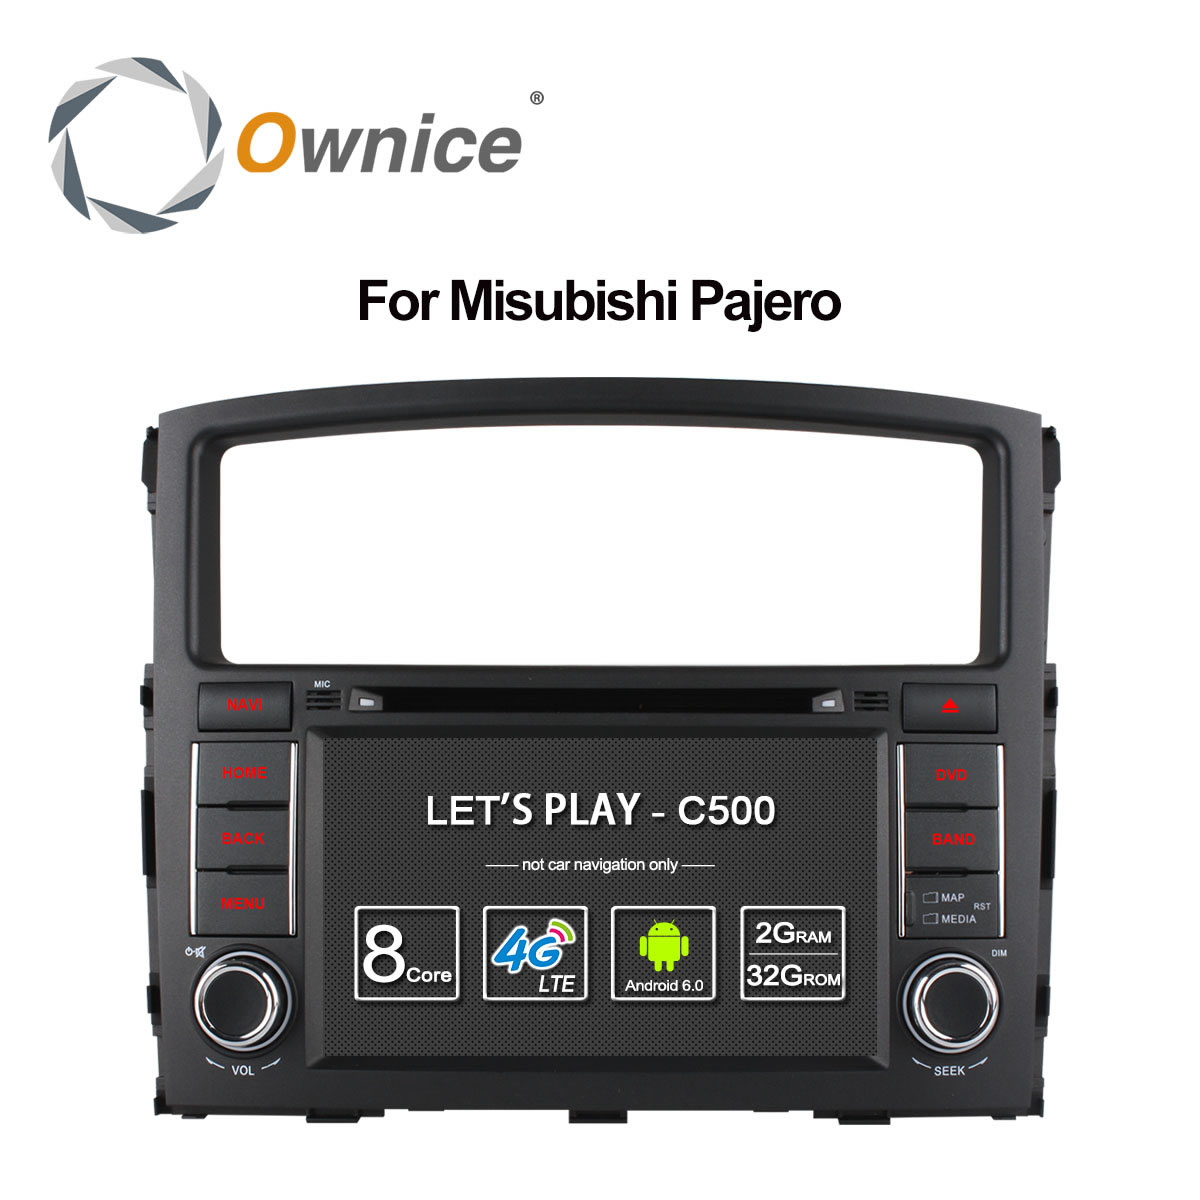 Ownice C500 Octa 8 Core Android 6.0 For MITSUBISHI PAJERO V97 V93 2006-2015 Car DVD Player GPS Navi support 4G DAB+ TPMS 32G ROM